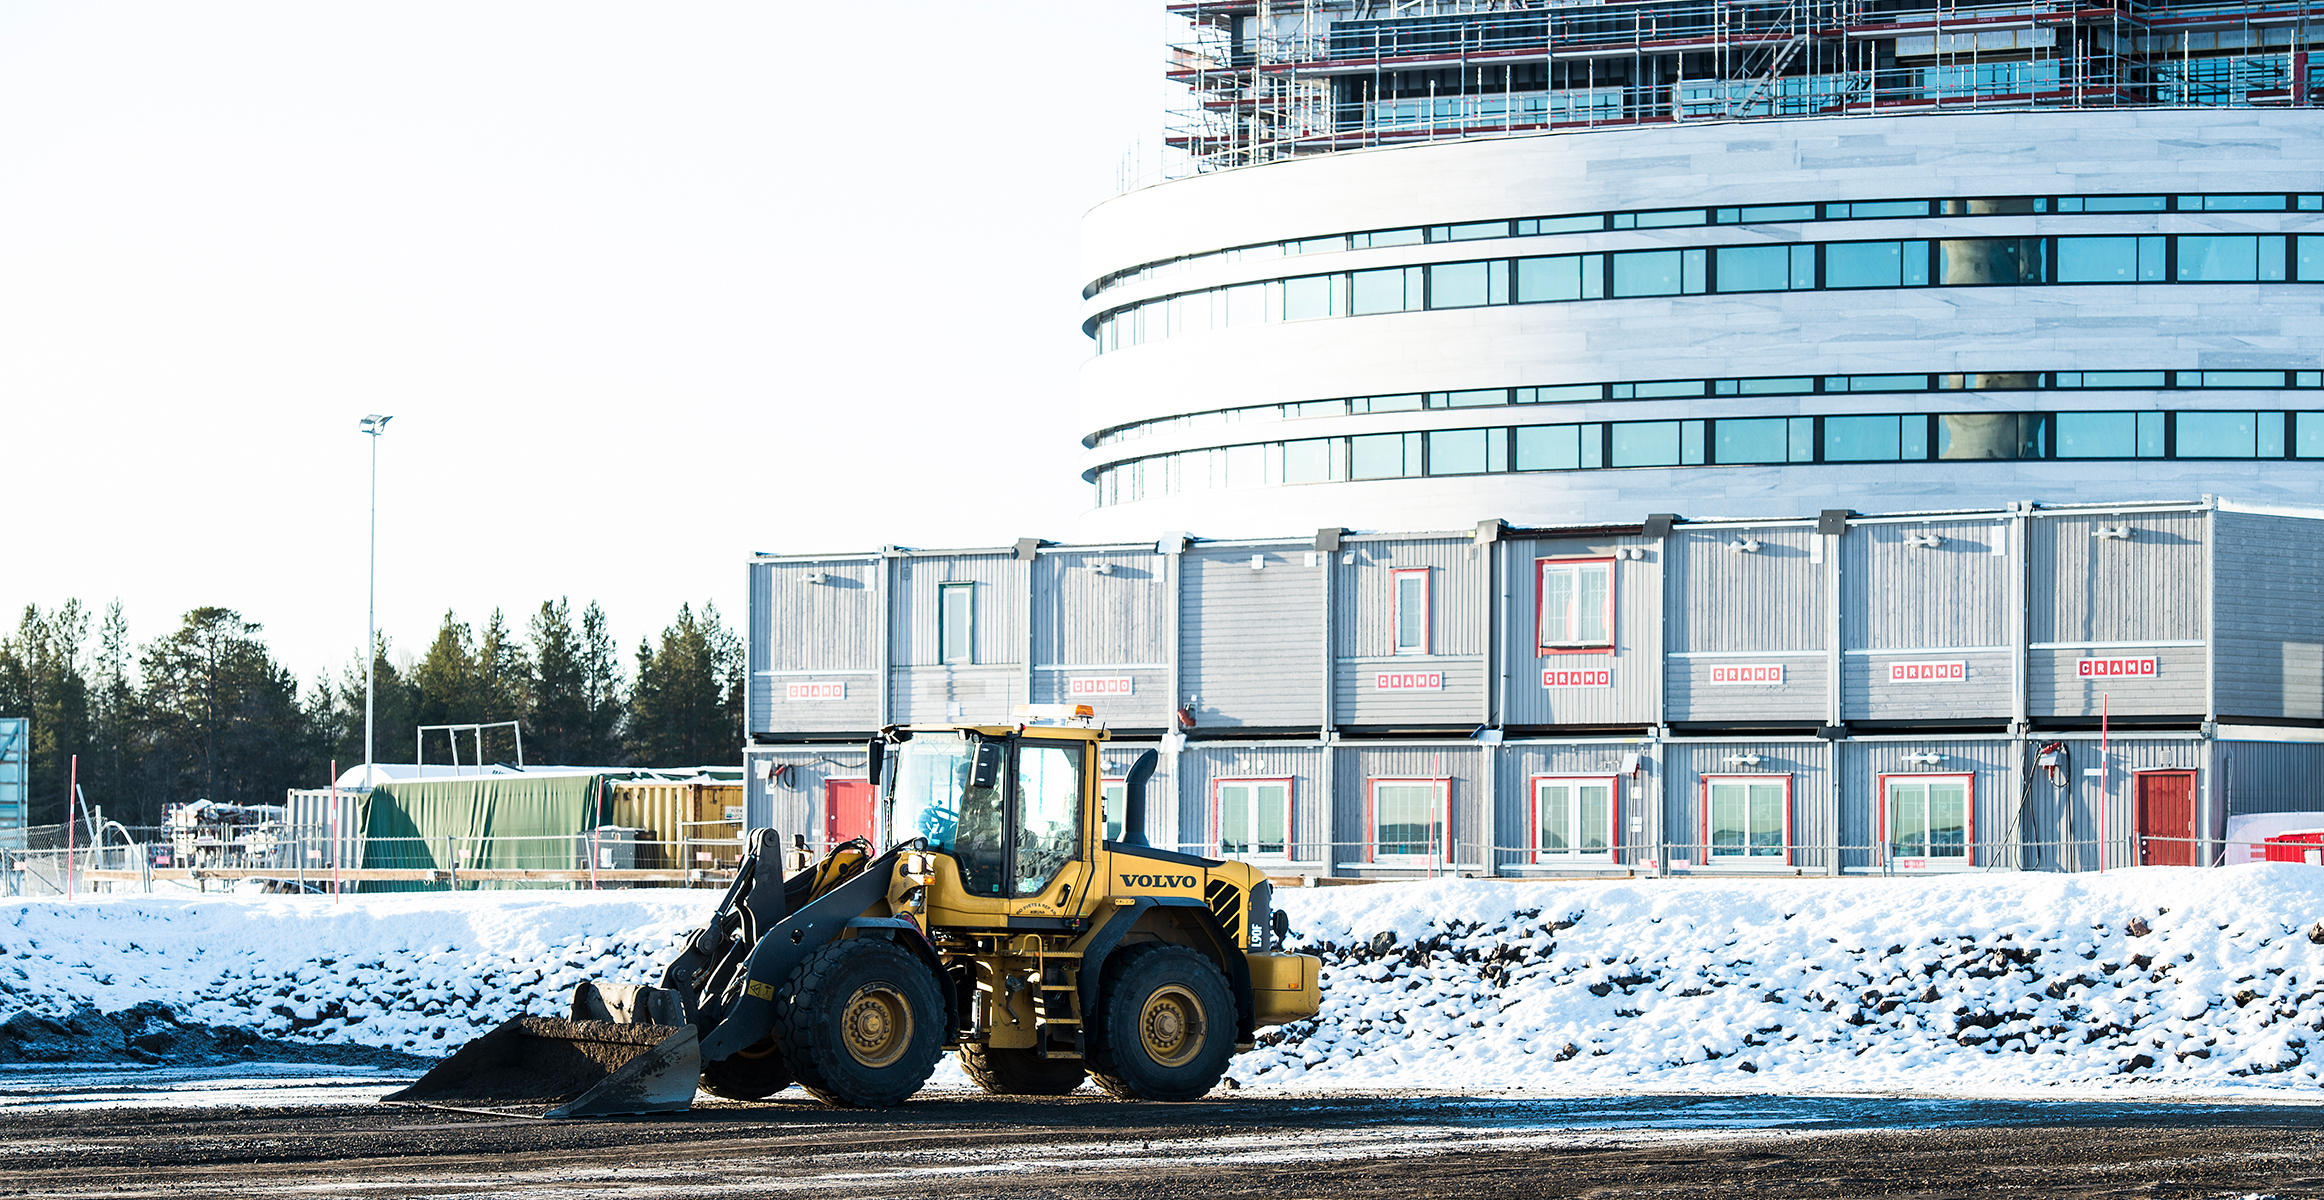 volvo-ce-presents-second-episode-kiruna-02-2324x1200